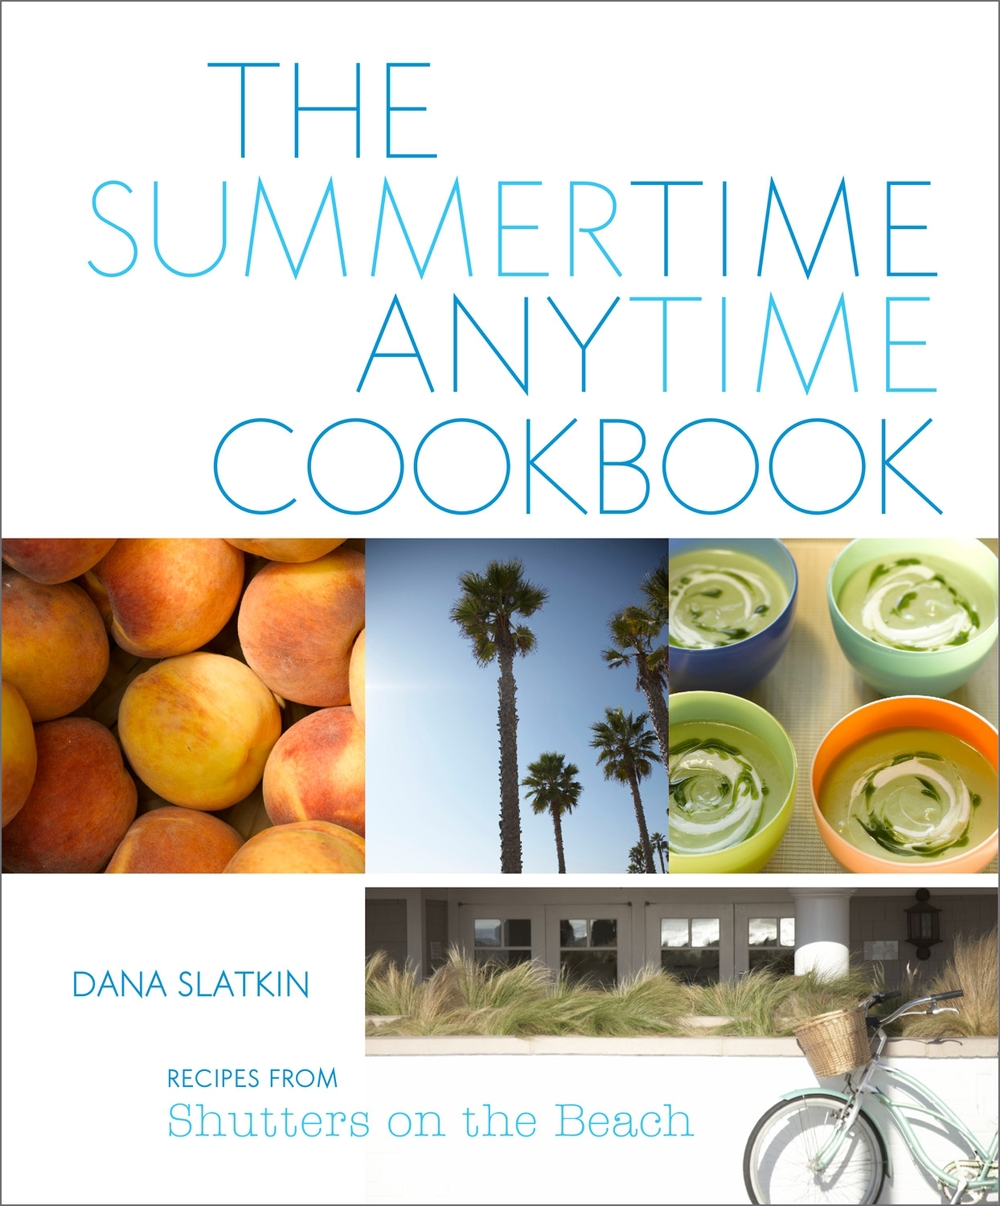 Maureen-Erbe-Design-Summertime-Anytime-Cookbook01.jpg